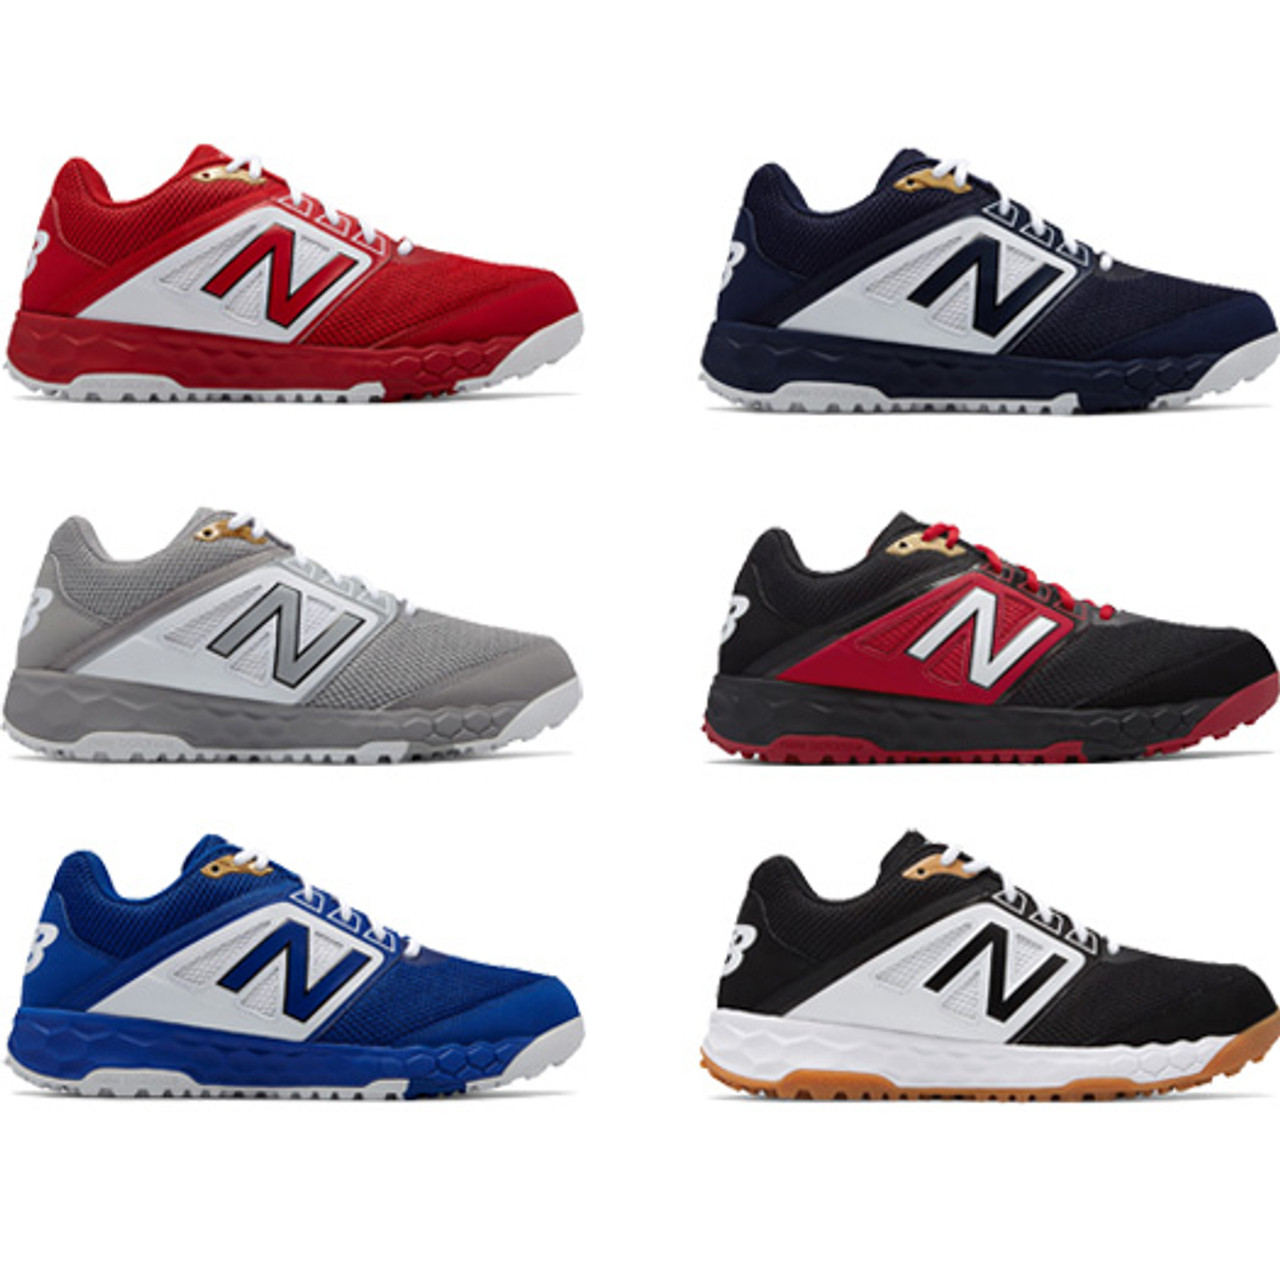 do new balance turf shoes run small